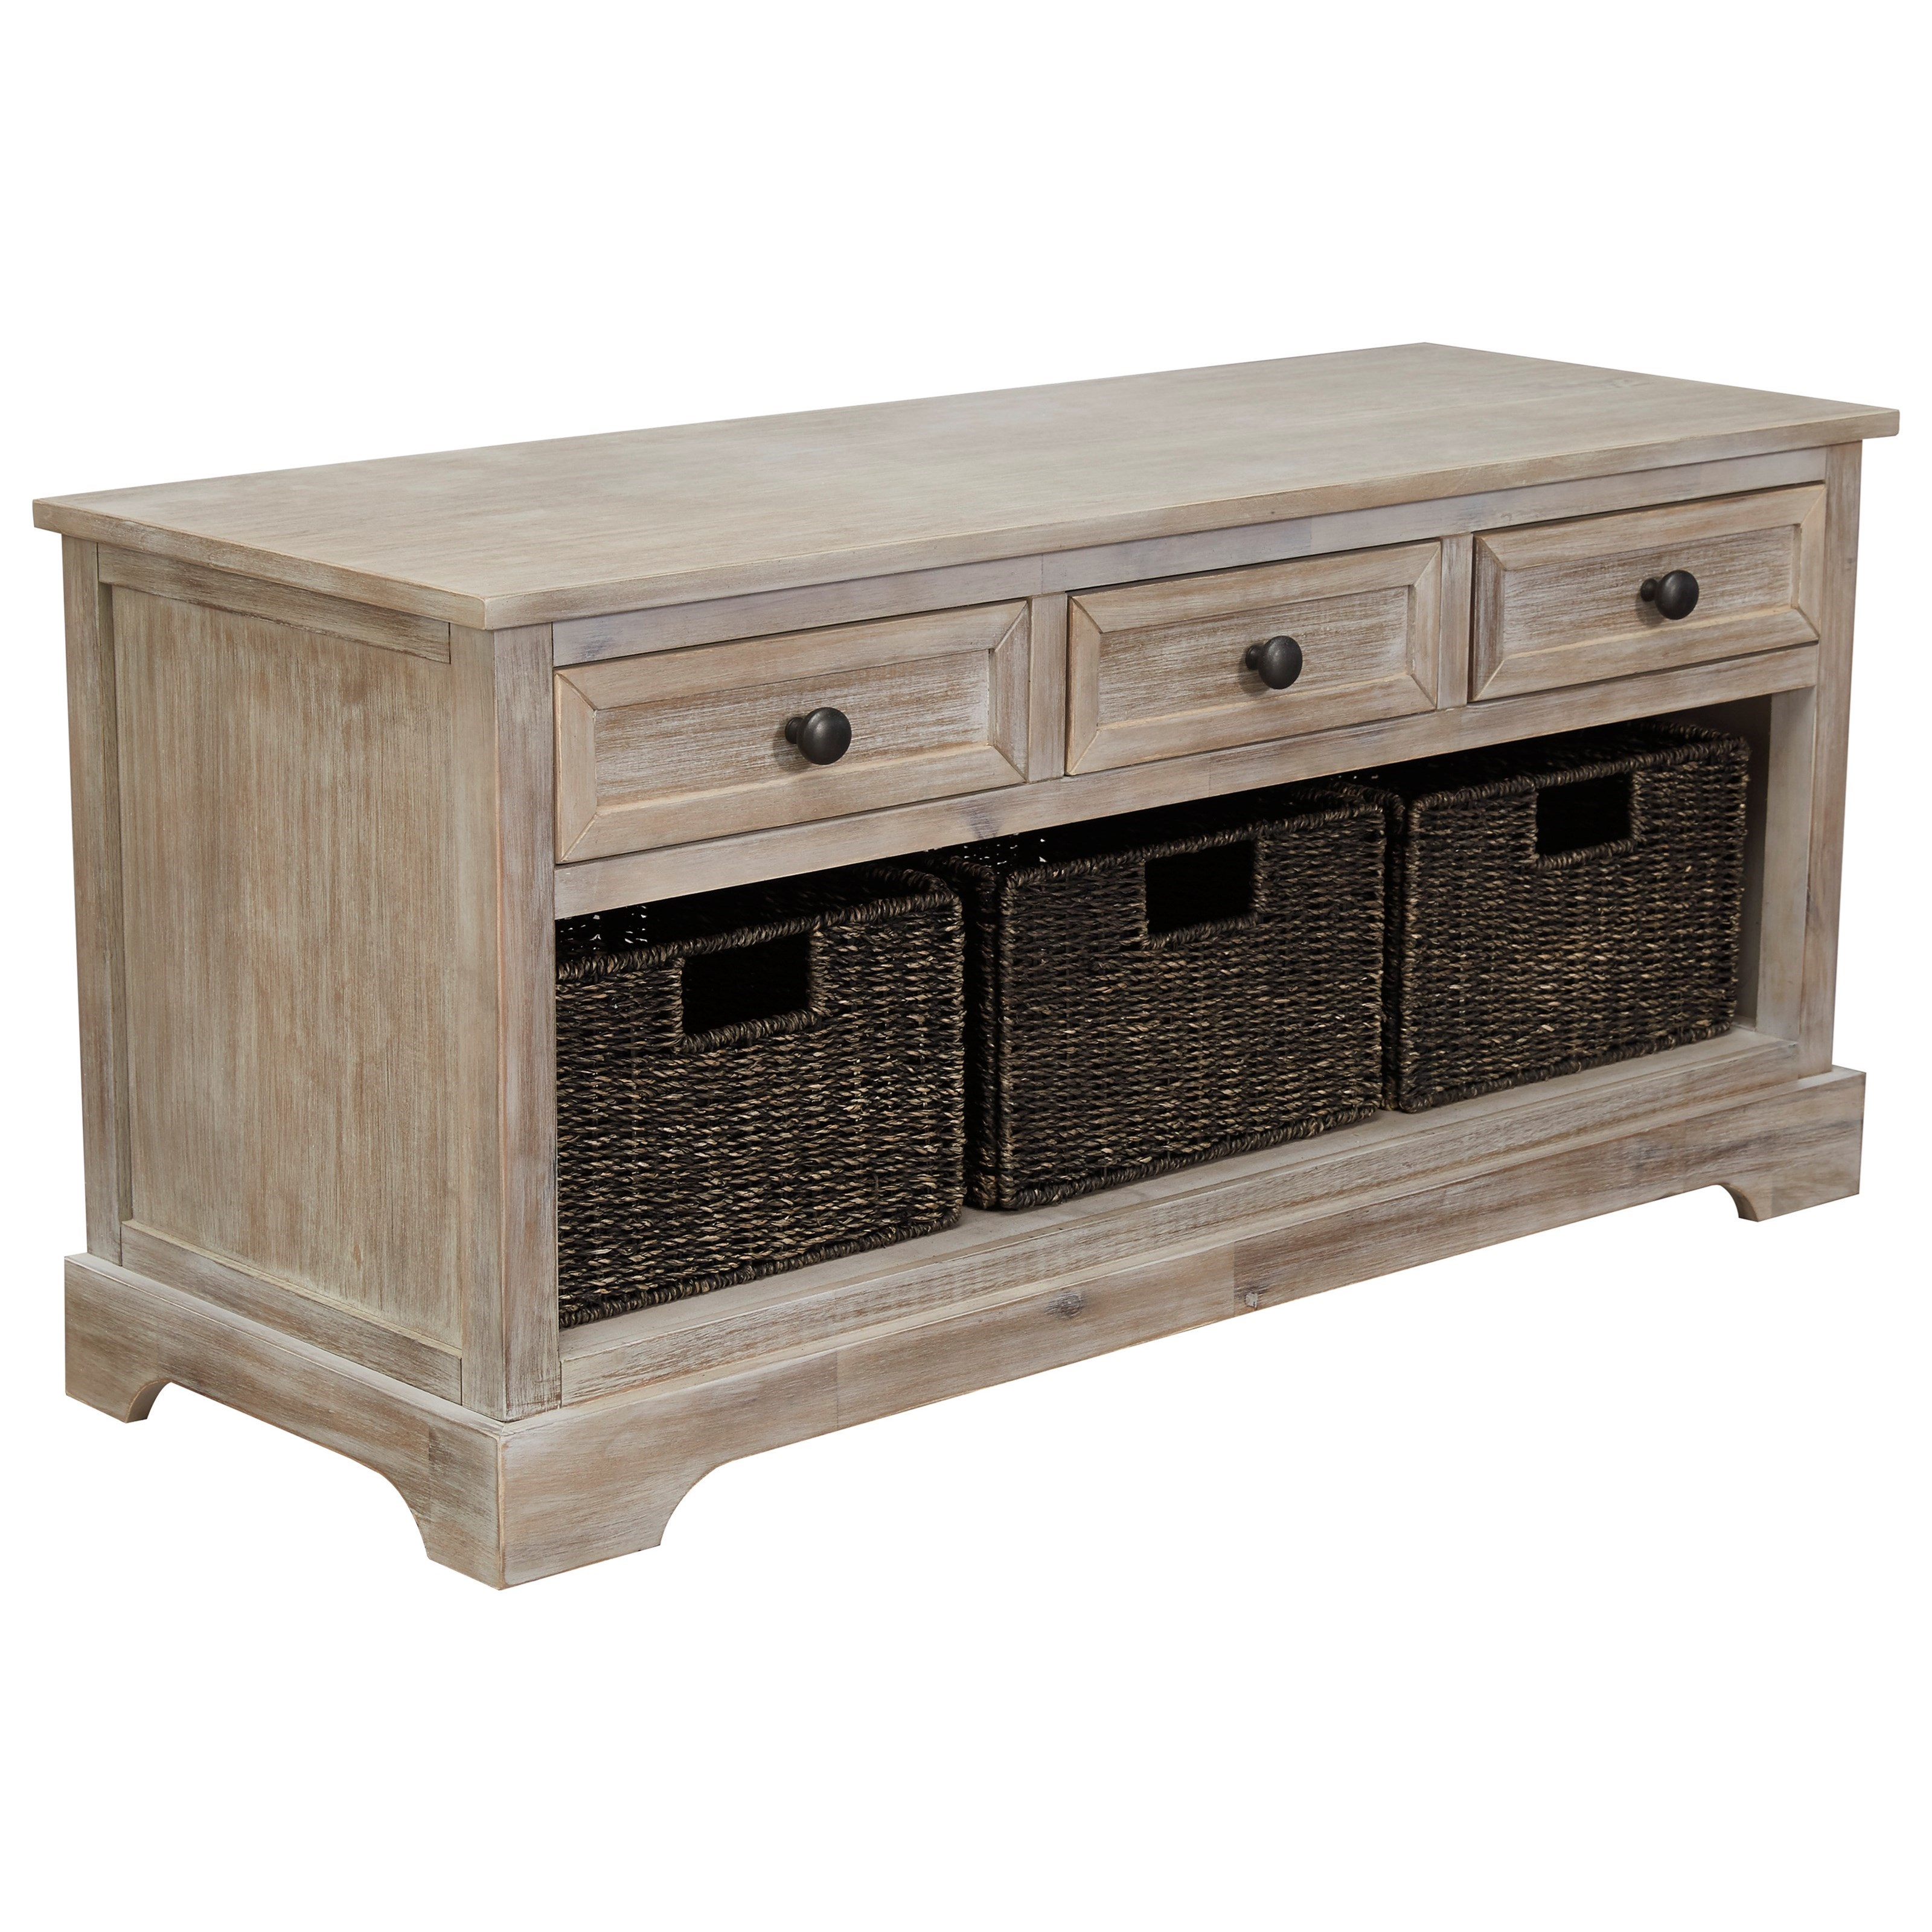 Oslember Storage Bench by Signature Design by Ashley at Household Furniture